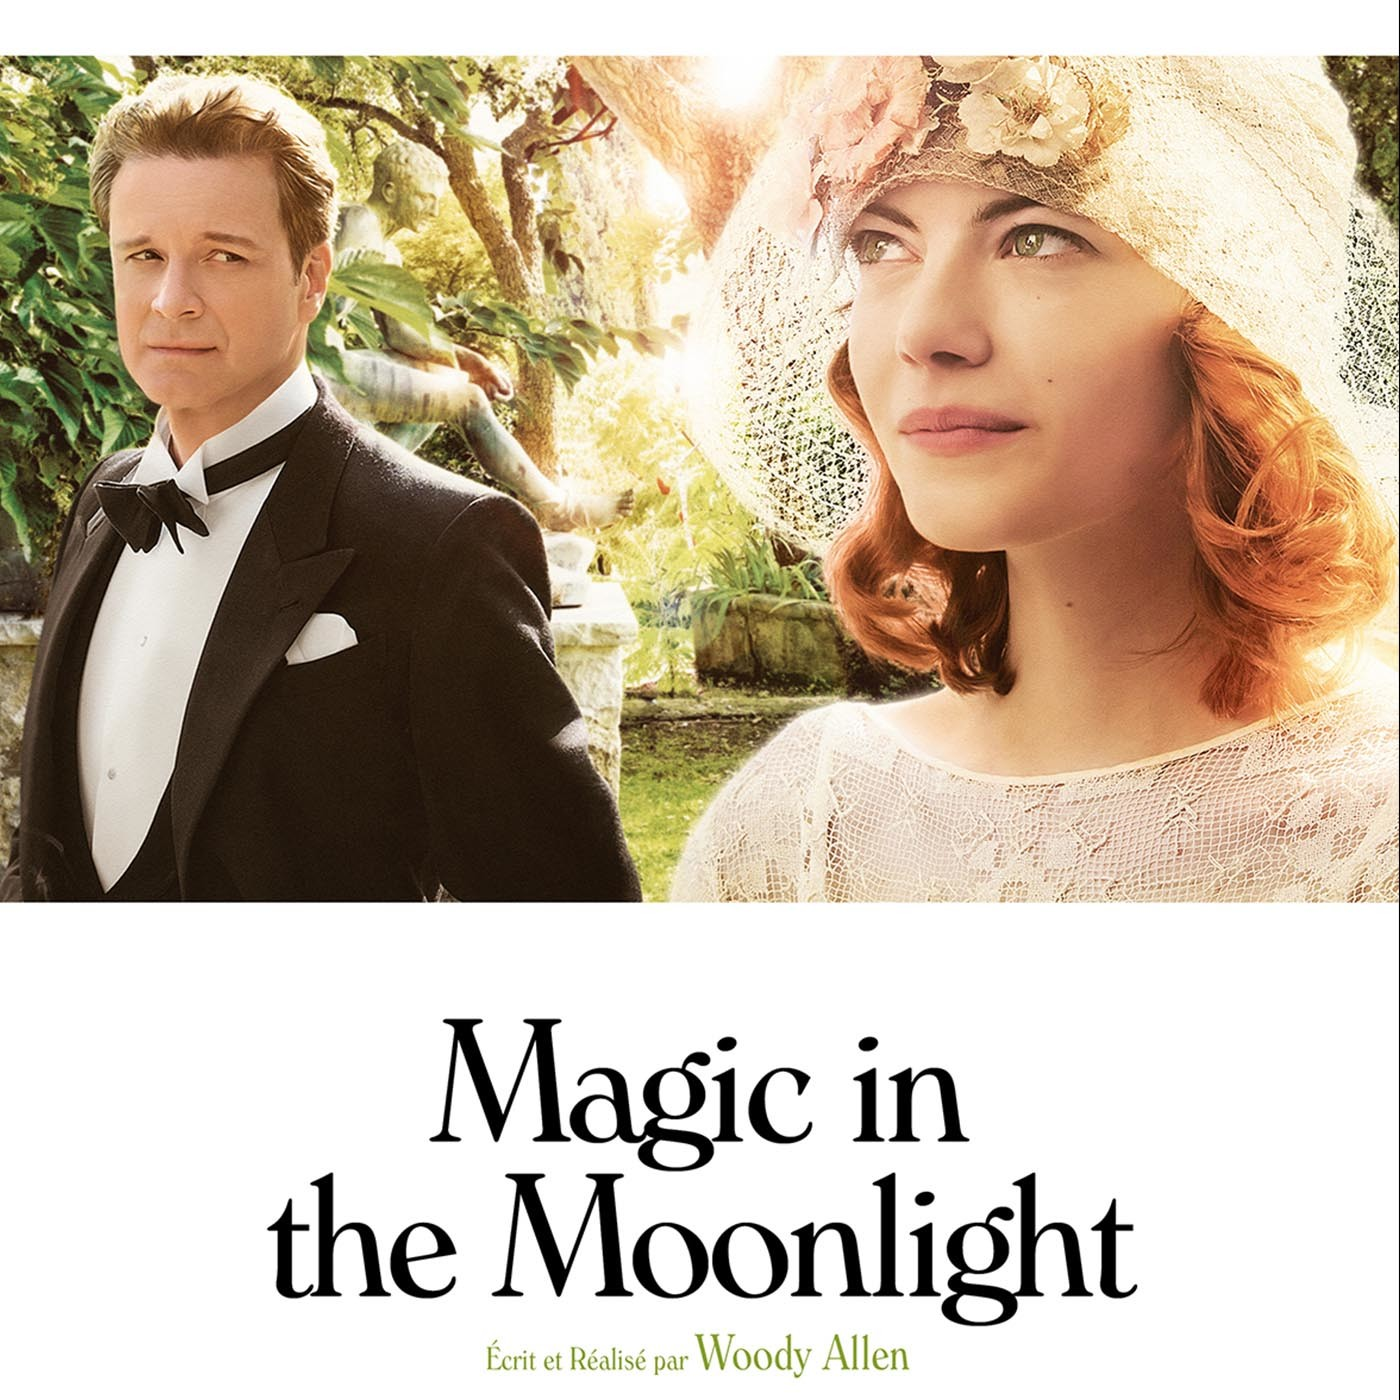 Magic In The Moonlight : La magie de Woody Allen ?